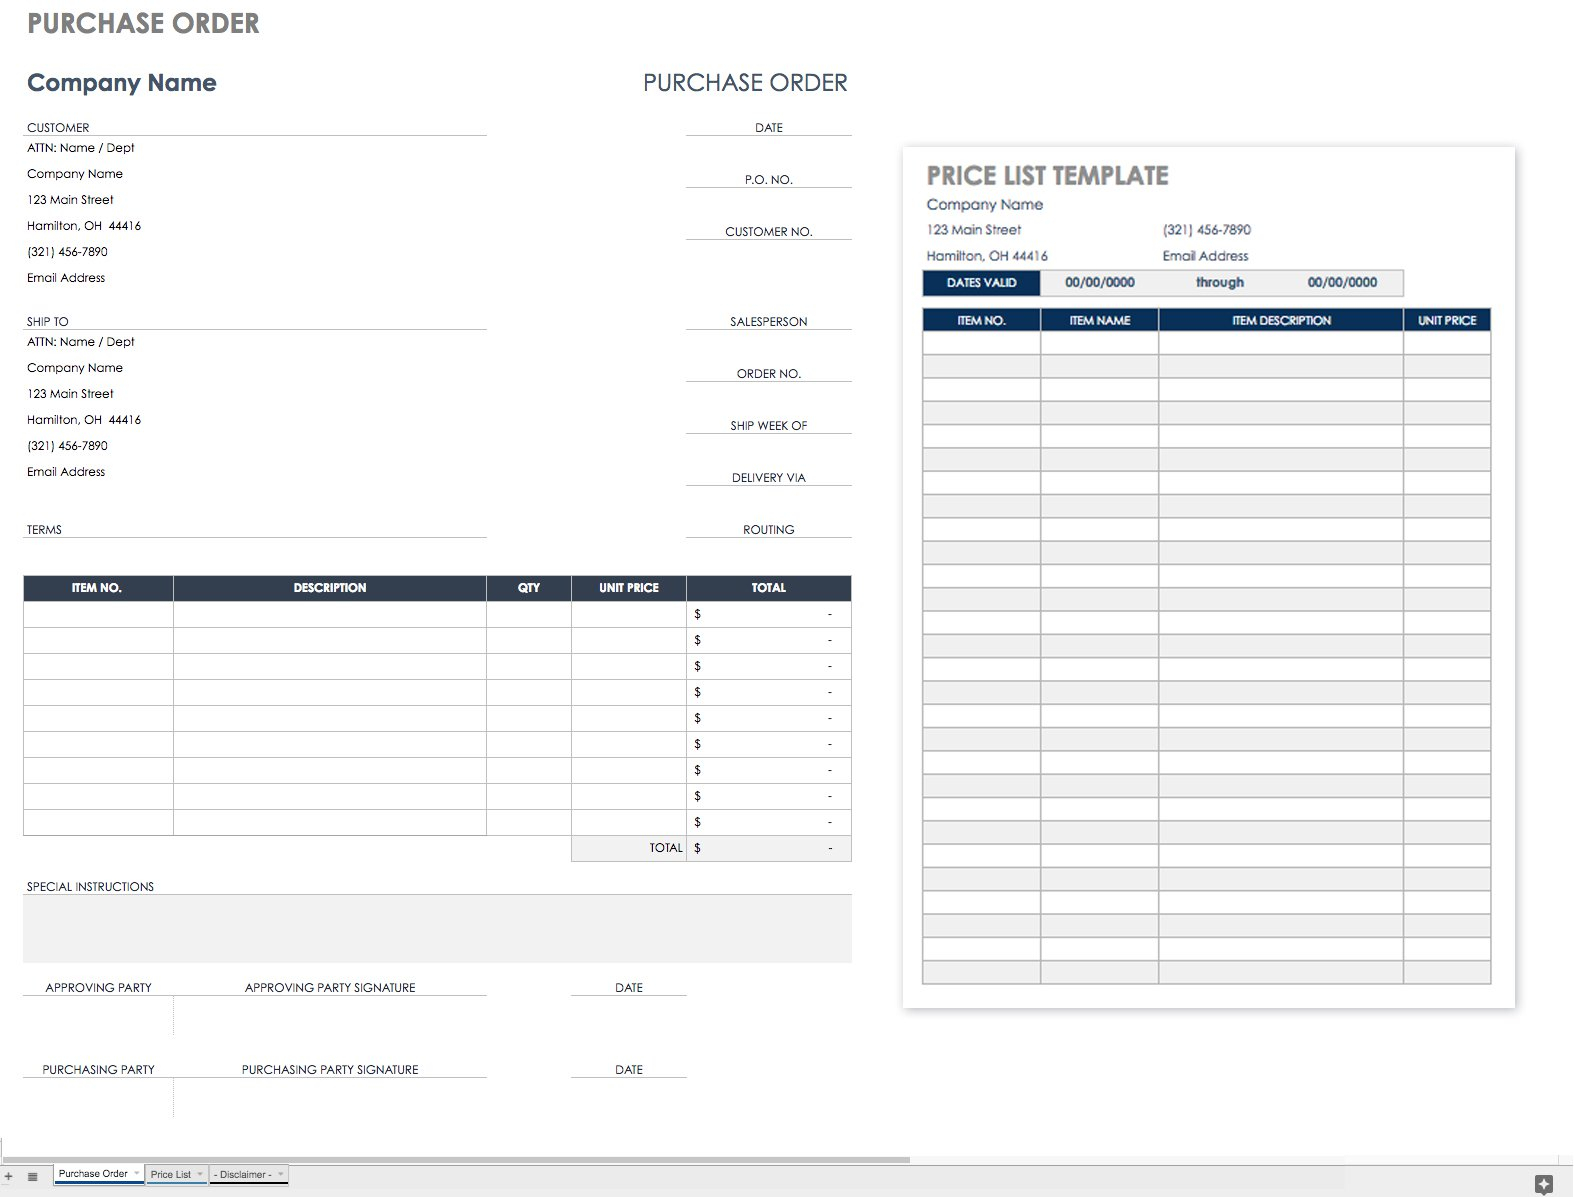 Free Purchase Order Templates Smartsheet regarding measurements 1574 X 1197